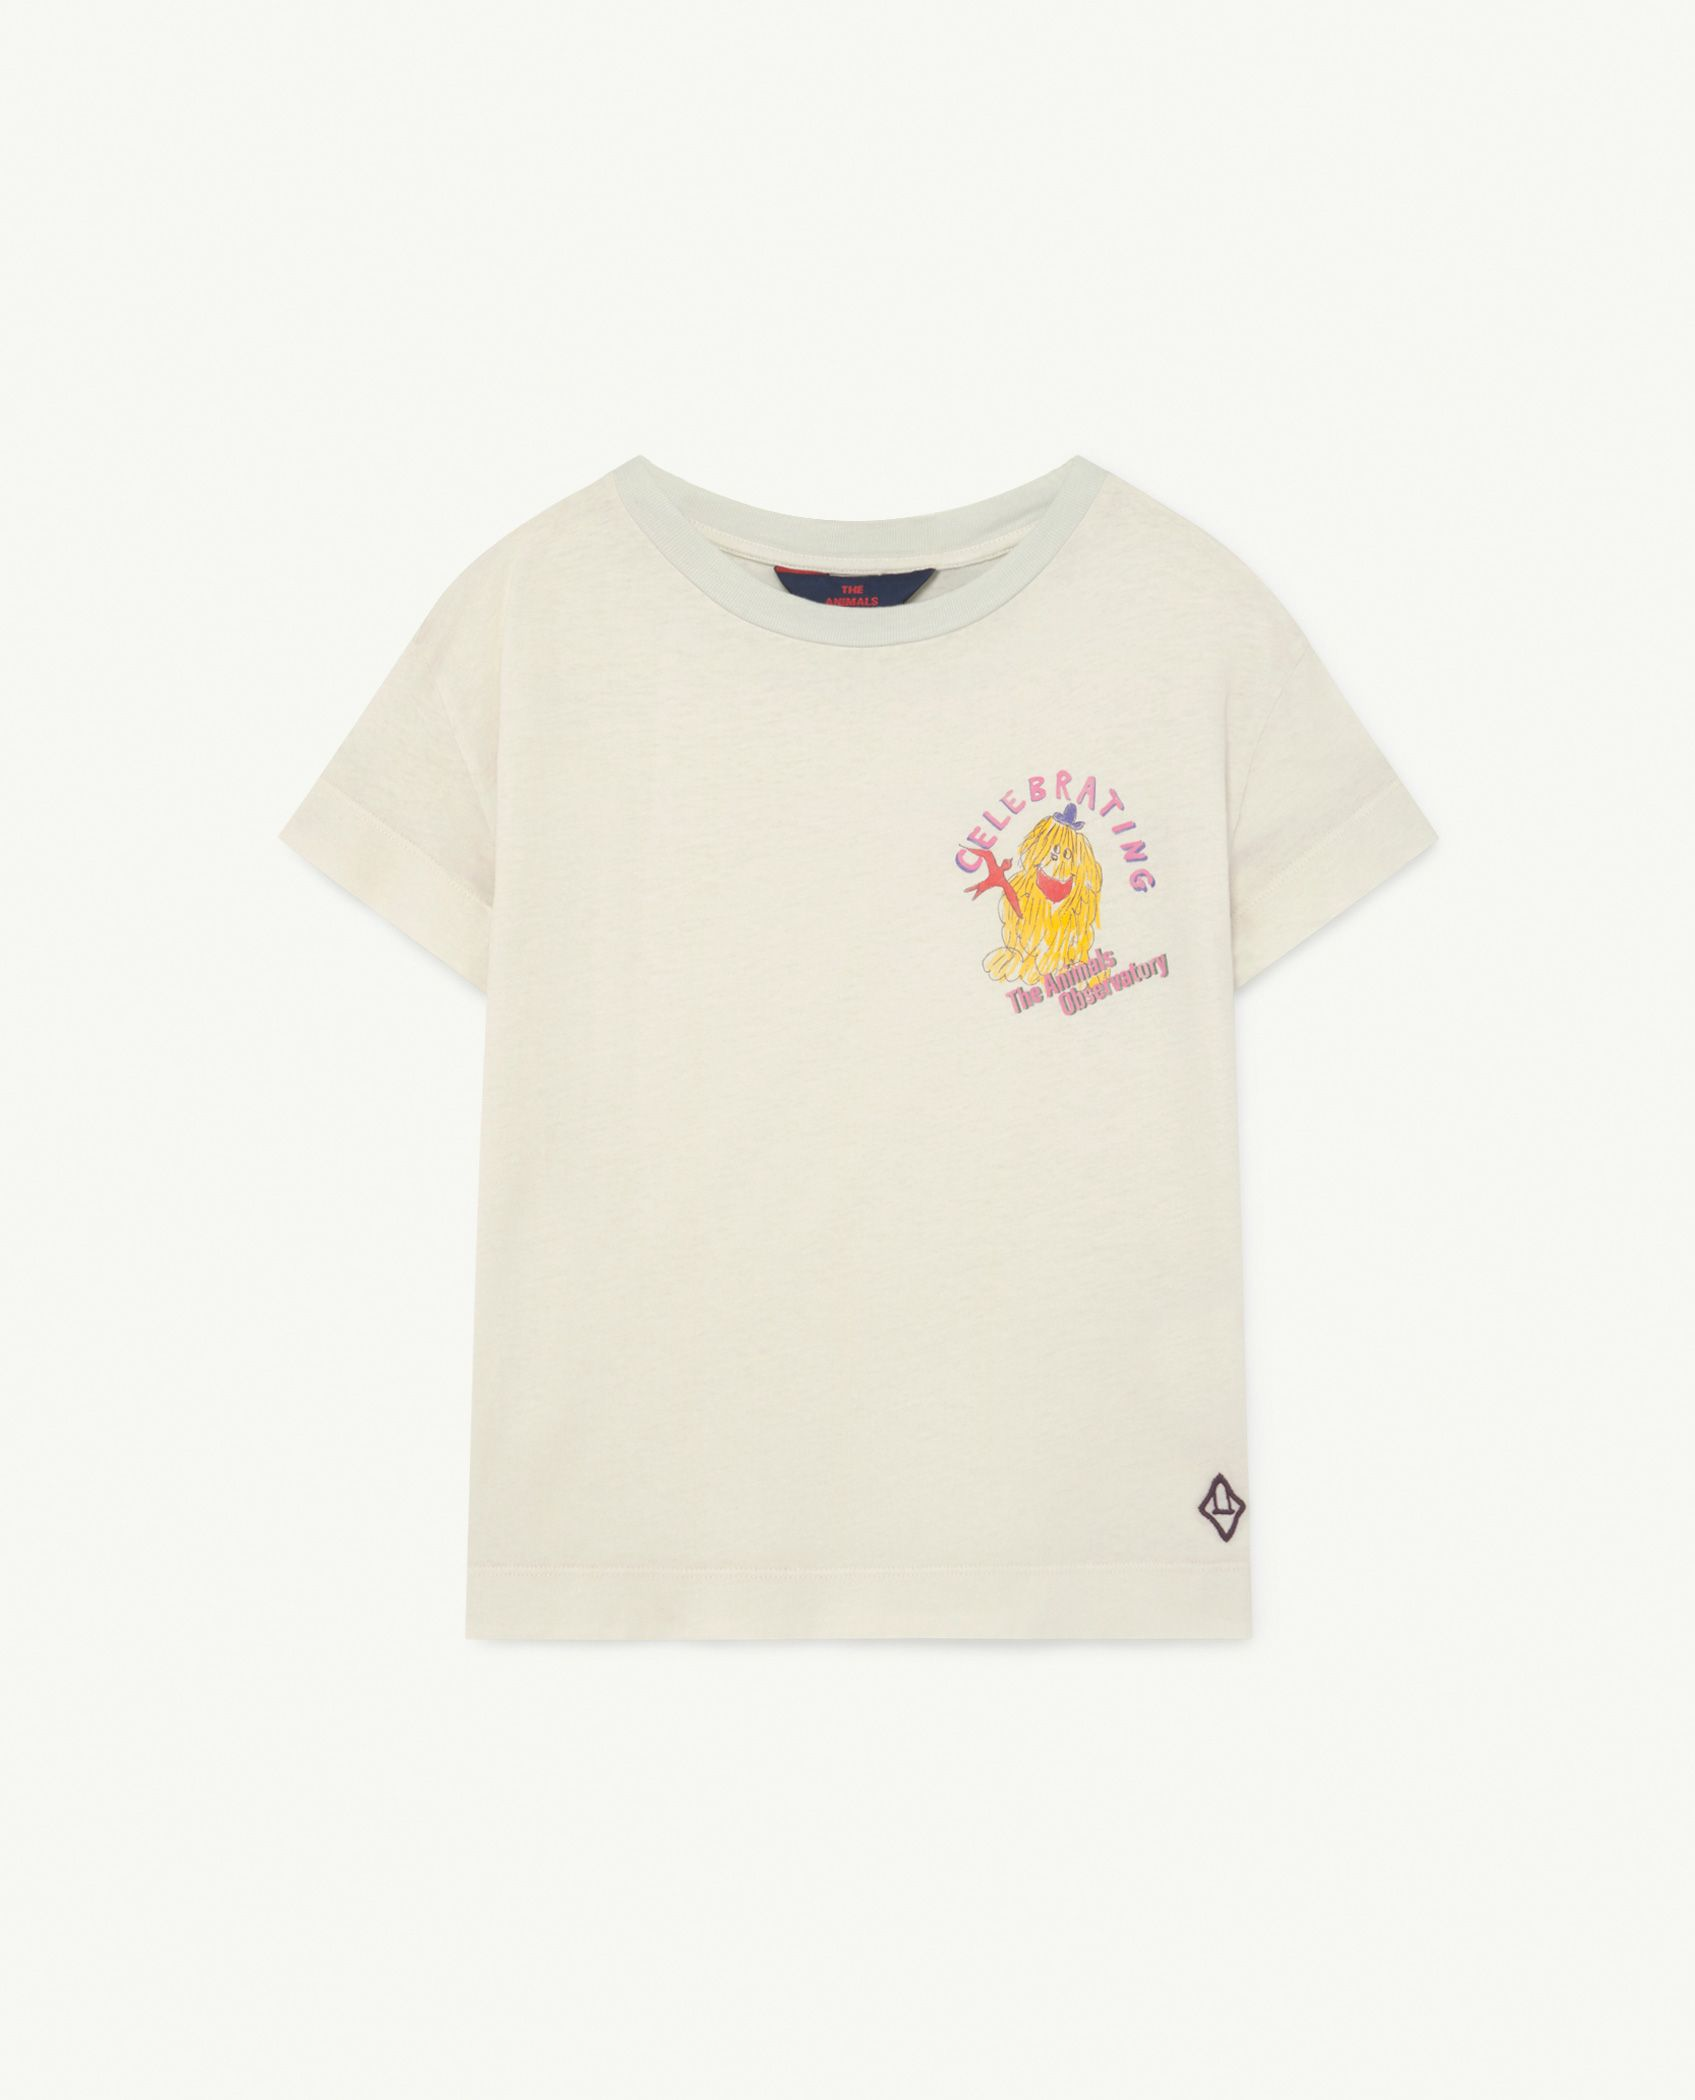 Soft White Celebrate Detail Rooster T-Shirt img-1